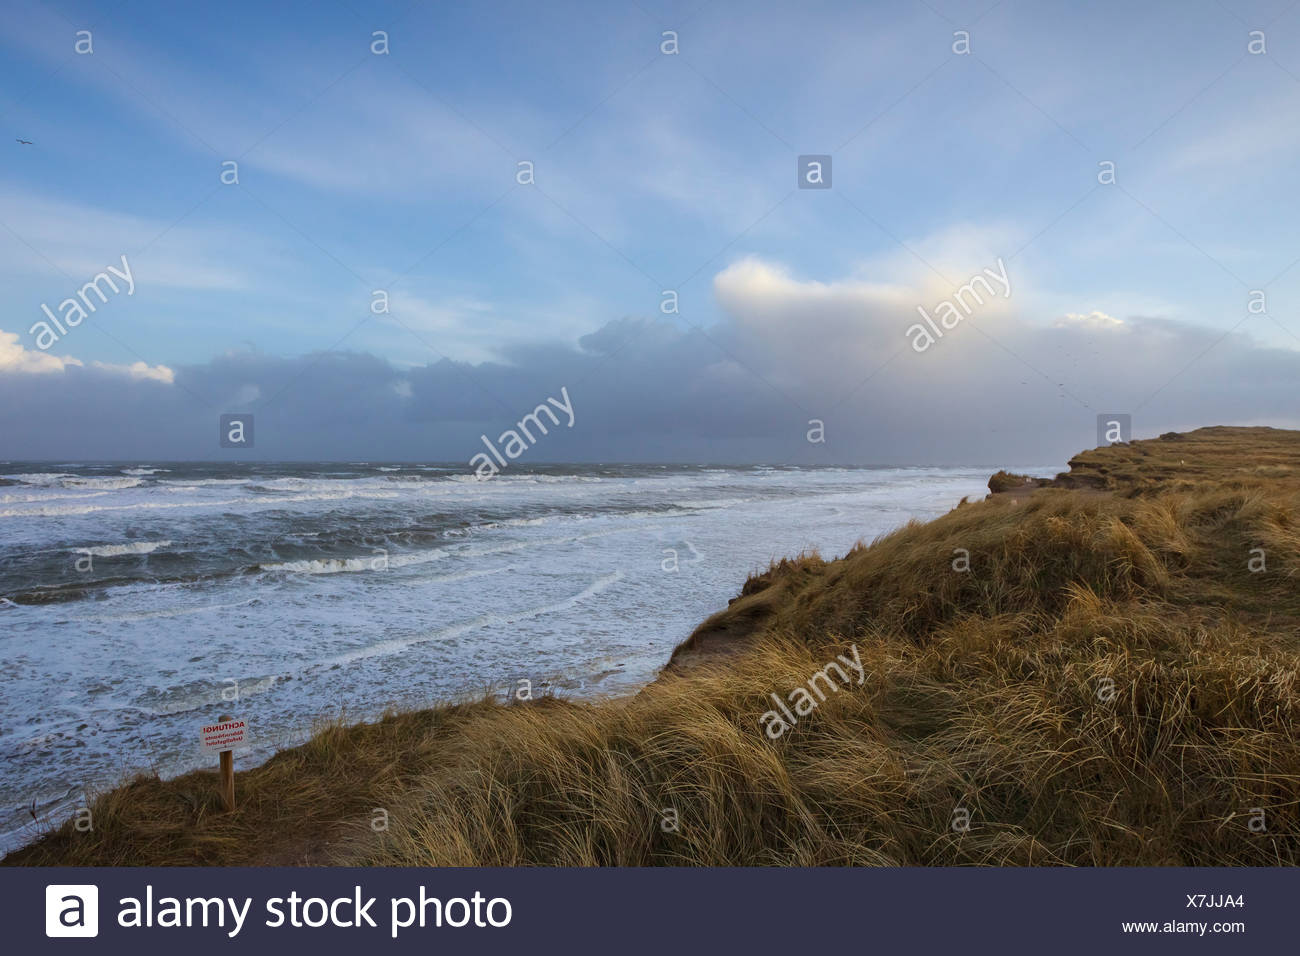 Rotes Kliff, Kampen, Sylt, Schleswig-Holstein, Germany, Europe - Stock Image